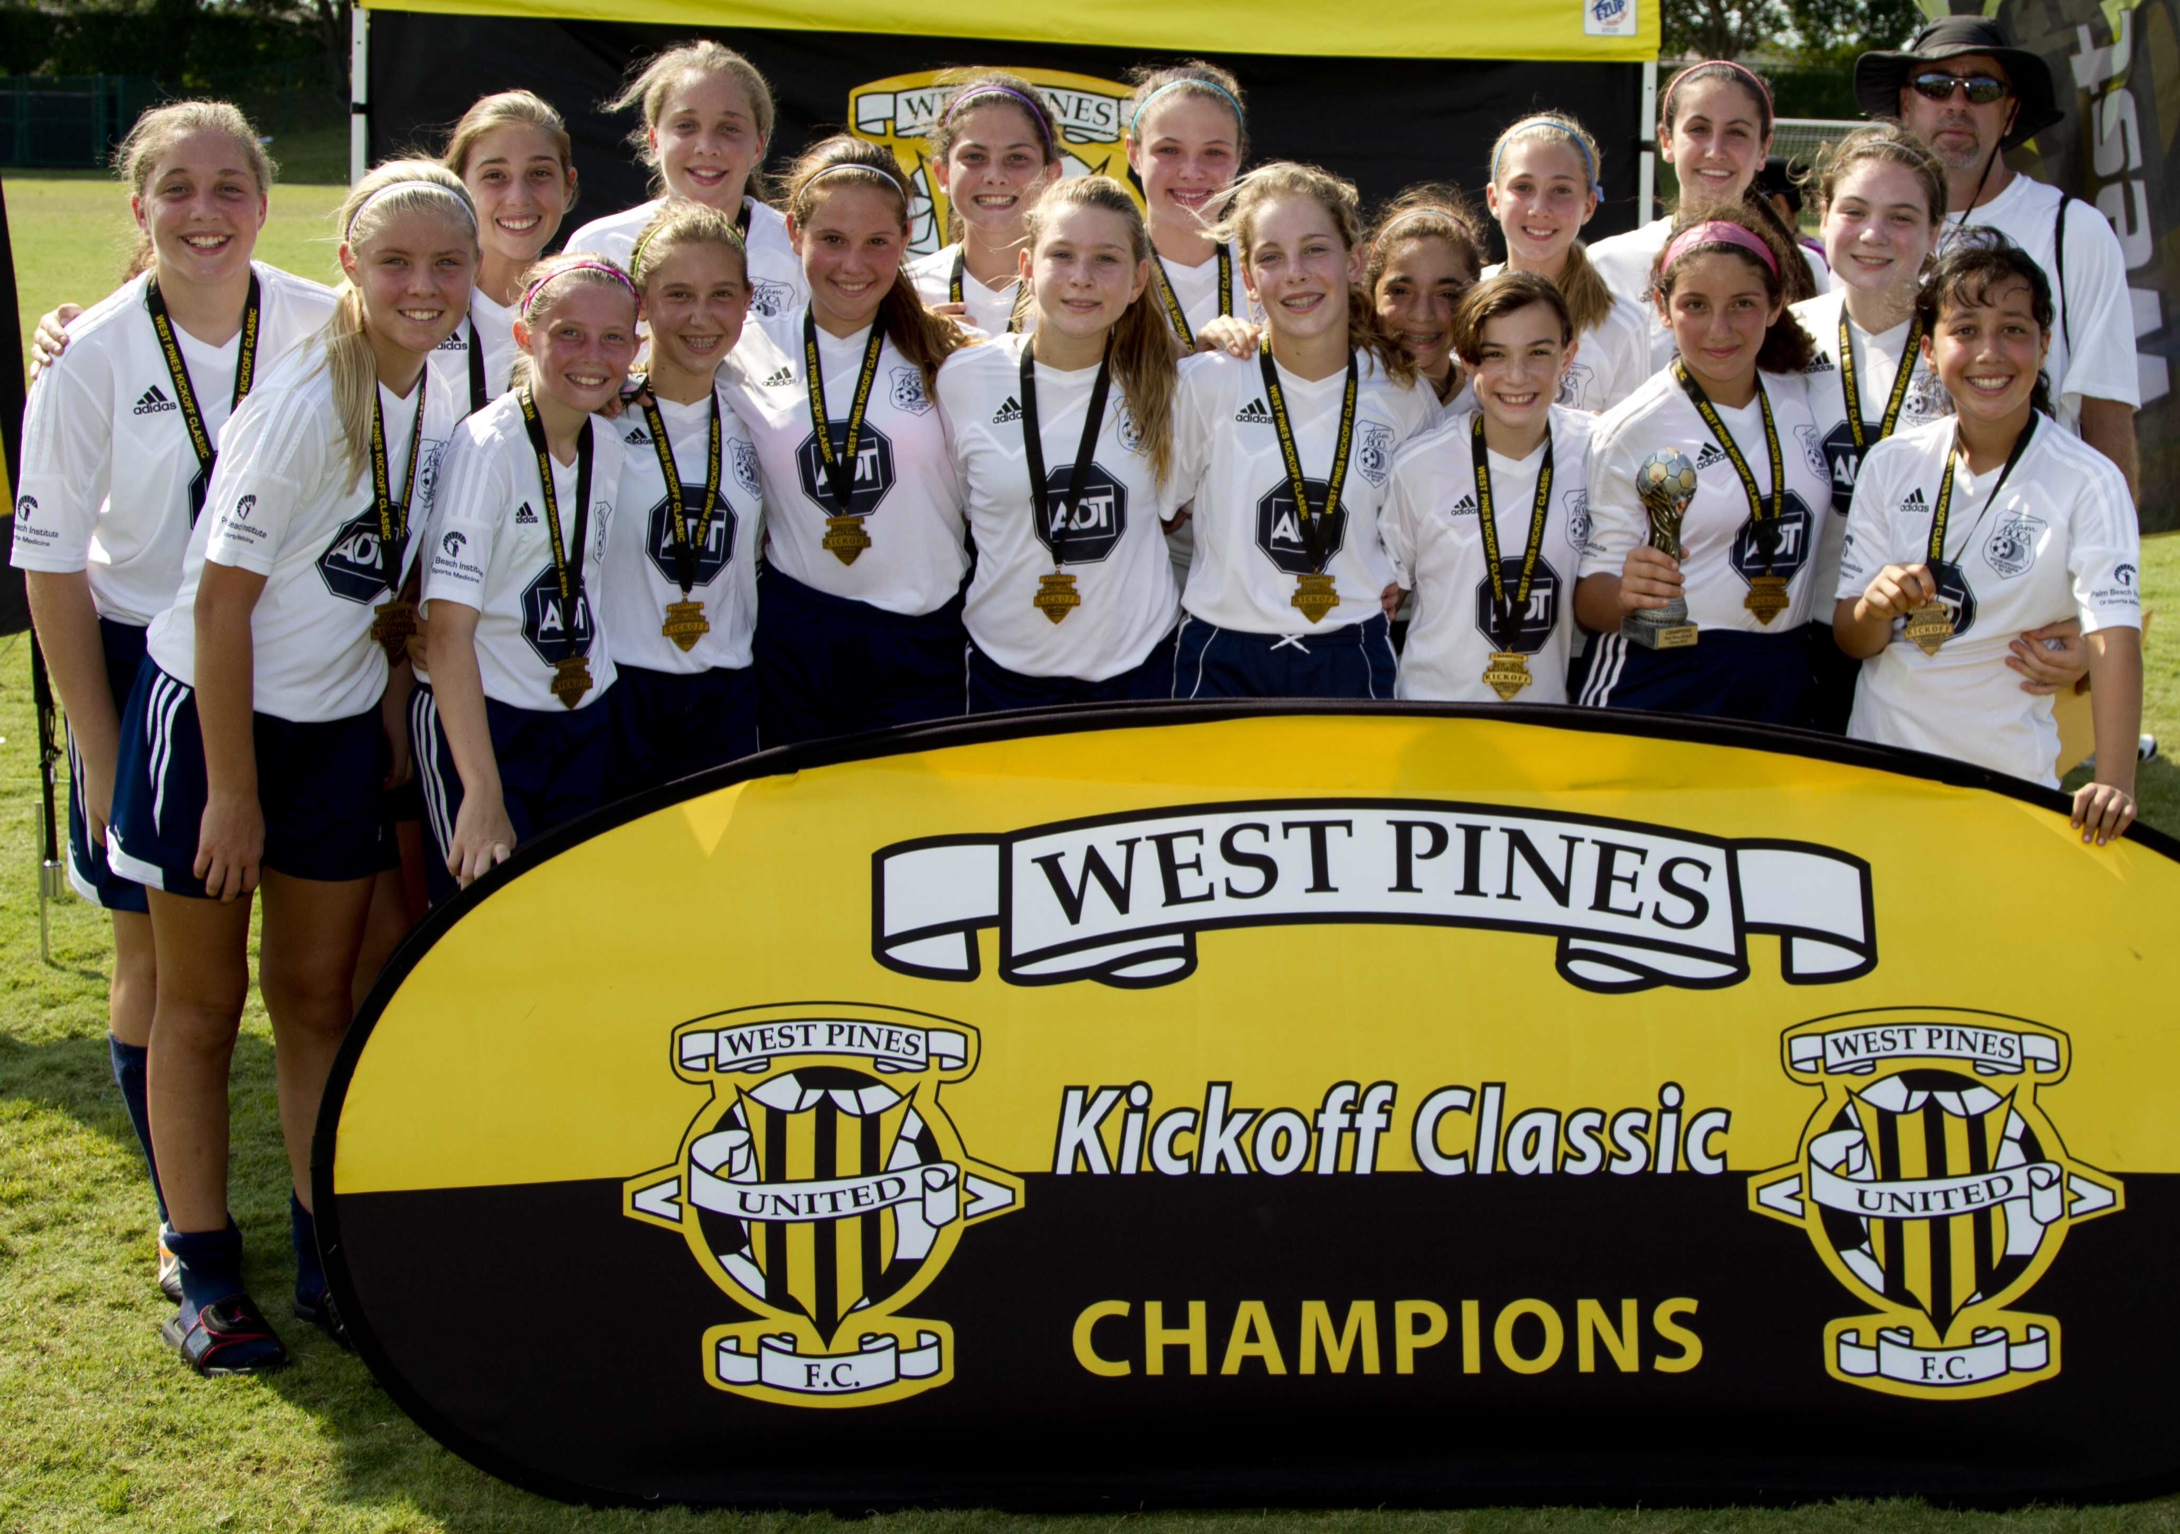 2013 West Pines Kickoff Classic Champions